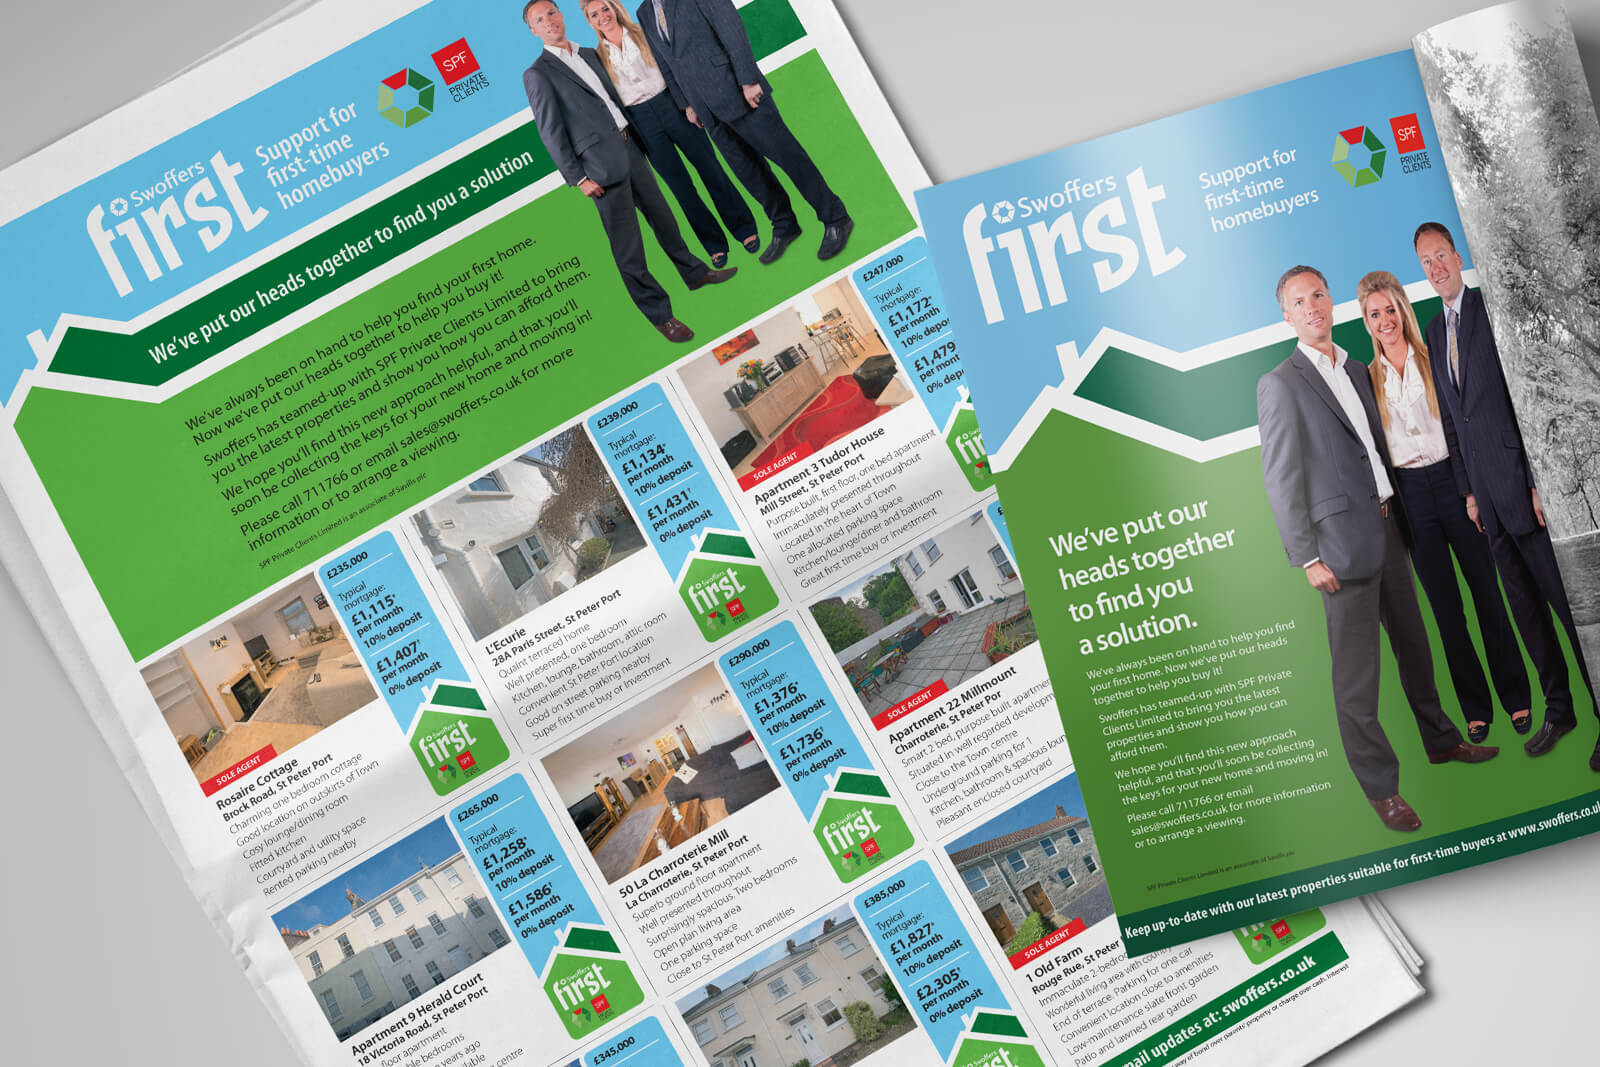 Innovating the property market with Swoffers First